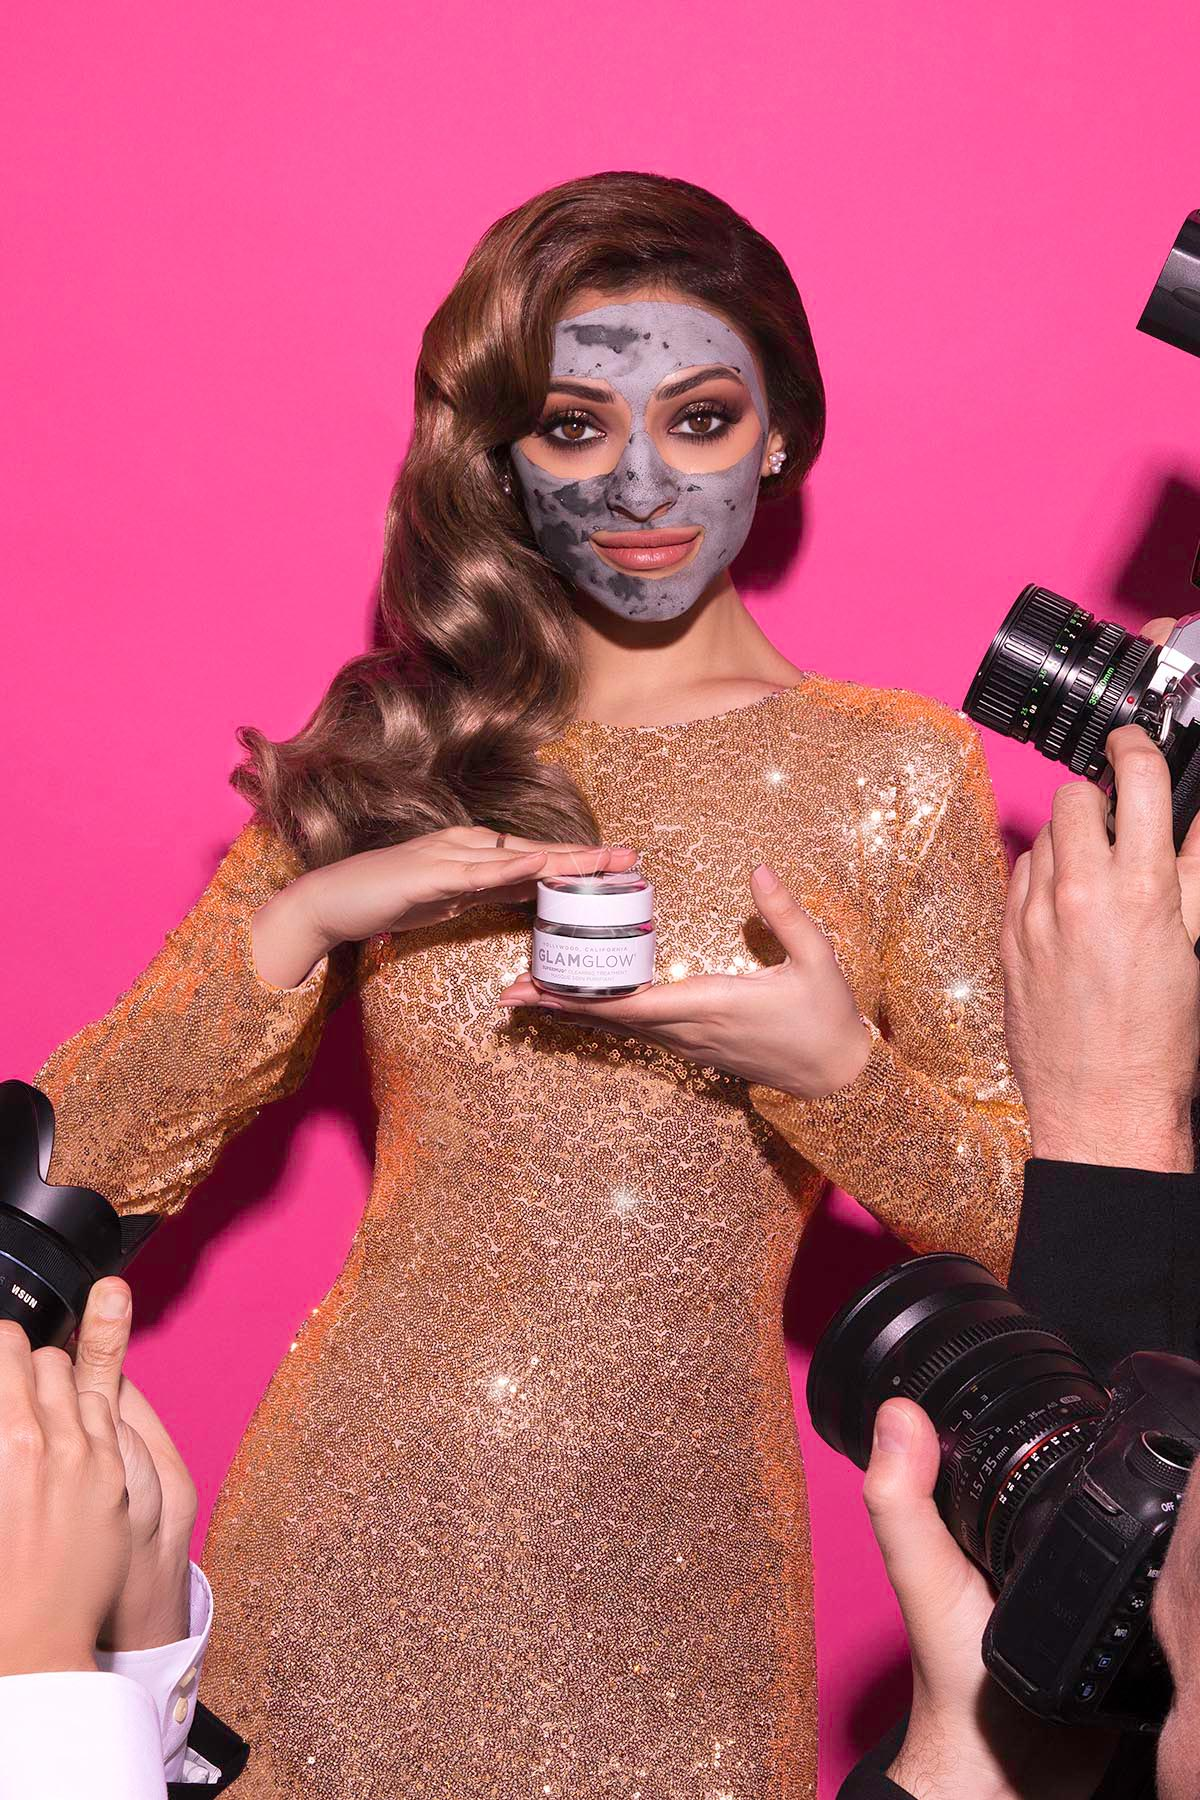 GlamGlow mud mask campaign by Loesje Kessels for Estée Lauder with Shouq Al Hadi